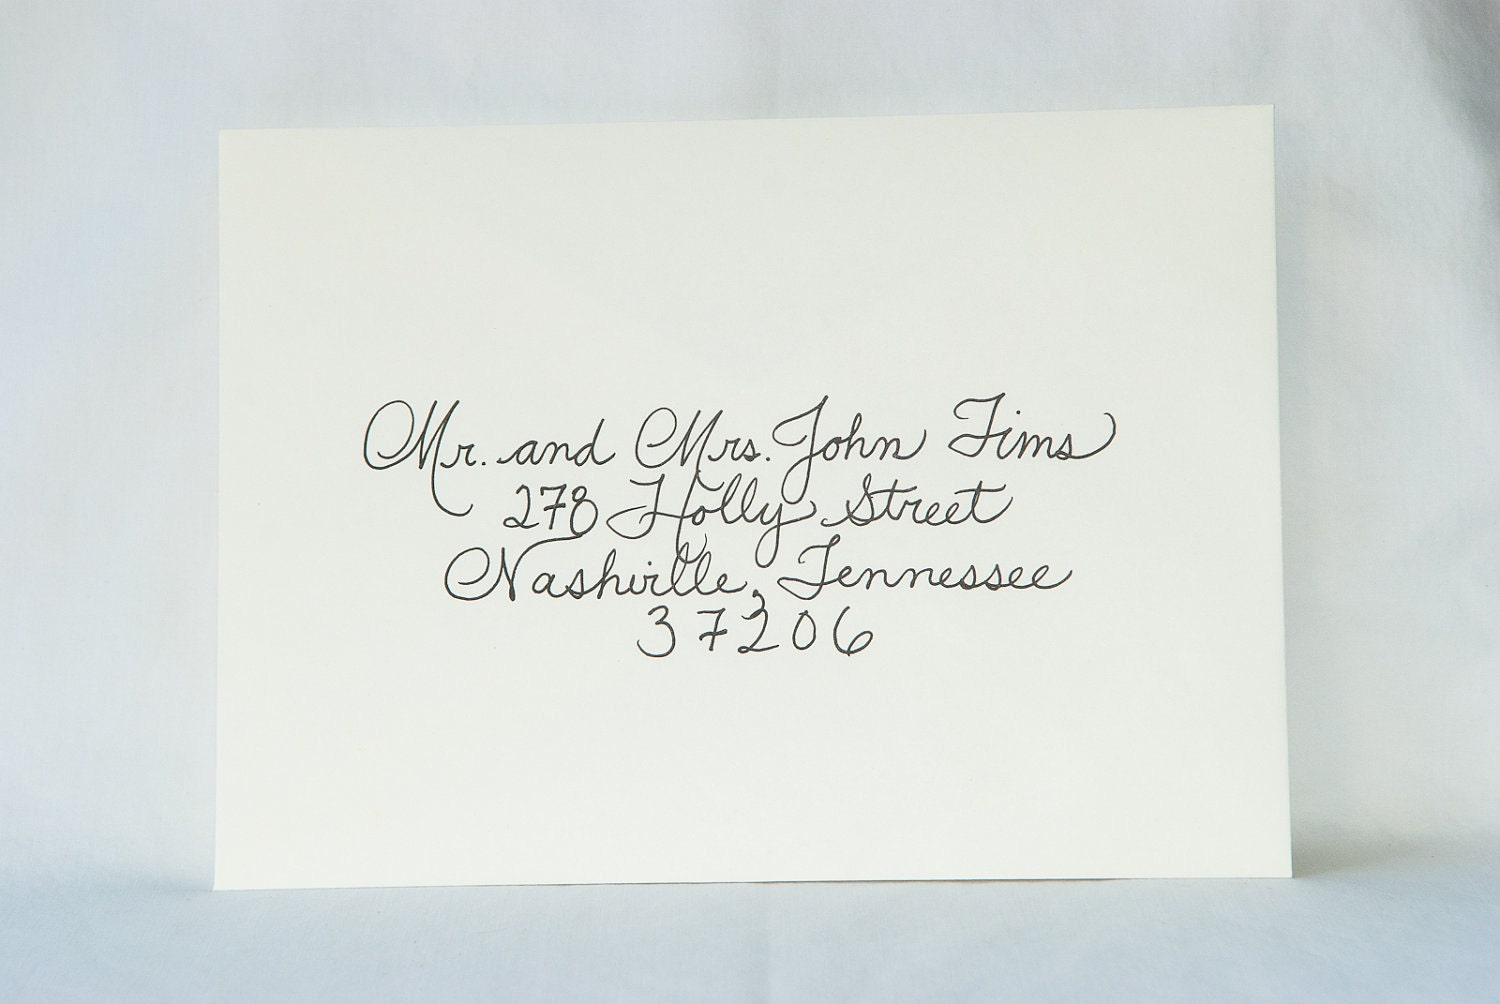 How To Write On Envelope For Wedding Invitations: Custom Wedding Calligraphy For Invitation Envelope Addressing